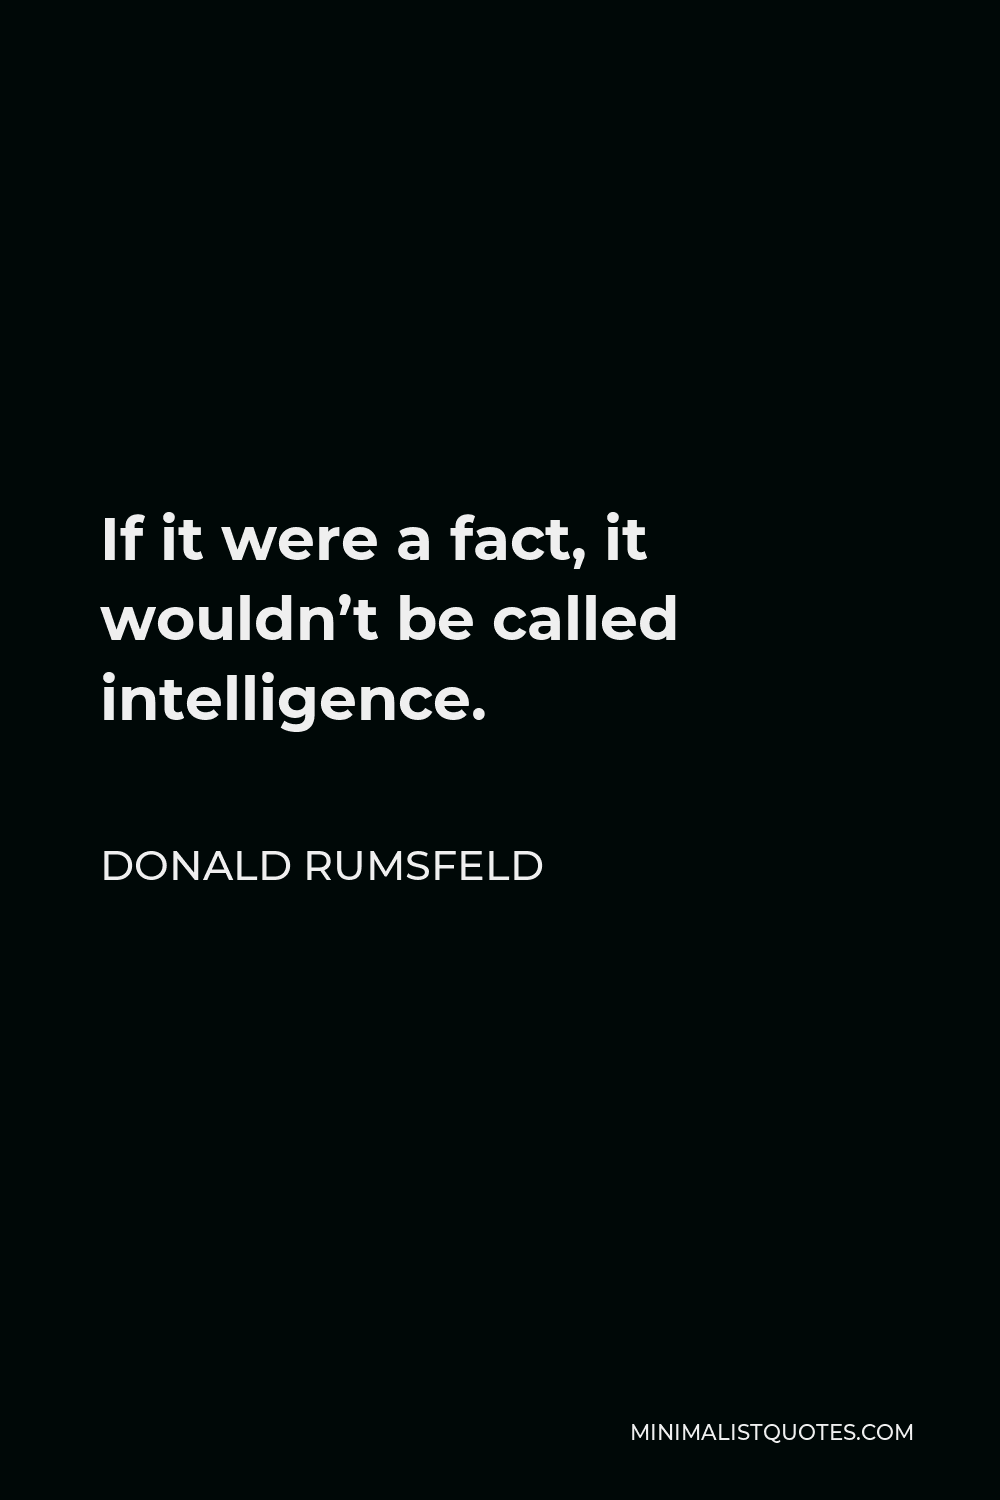 Donald Rumsfeld Quote - If it were a fact, it wouldn't be called intelligence.